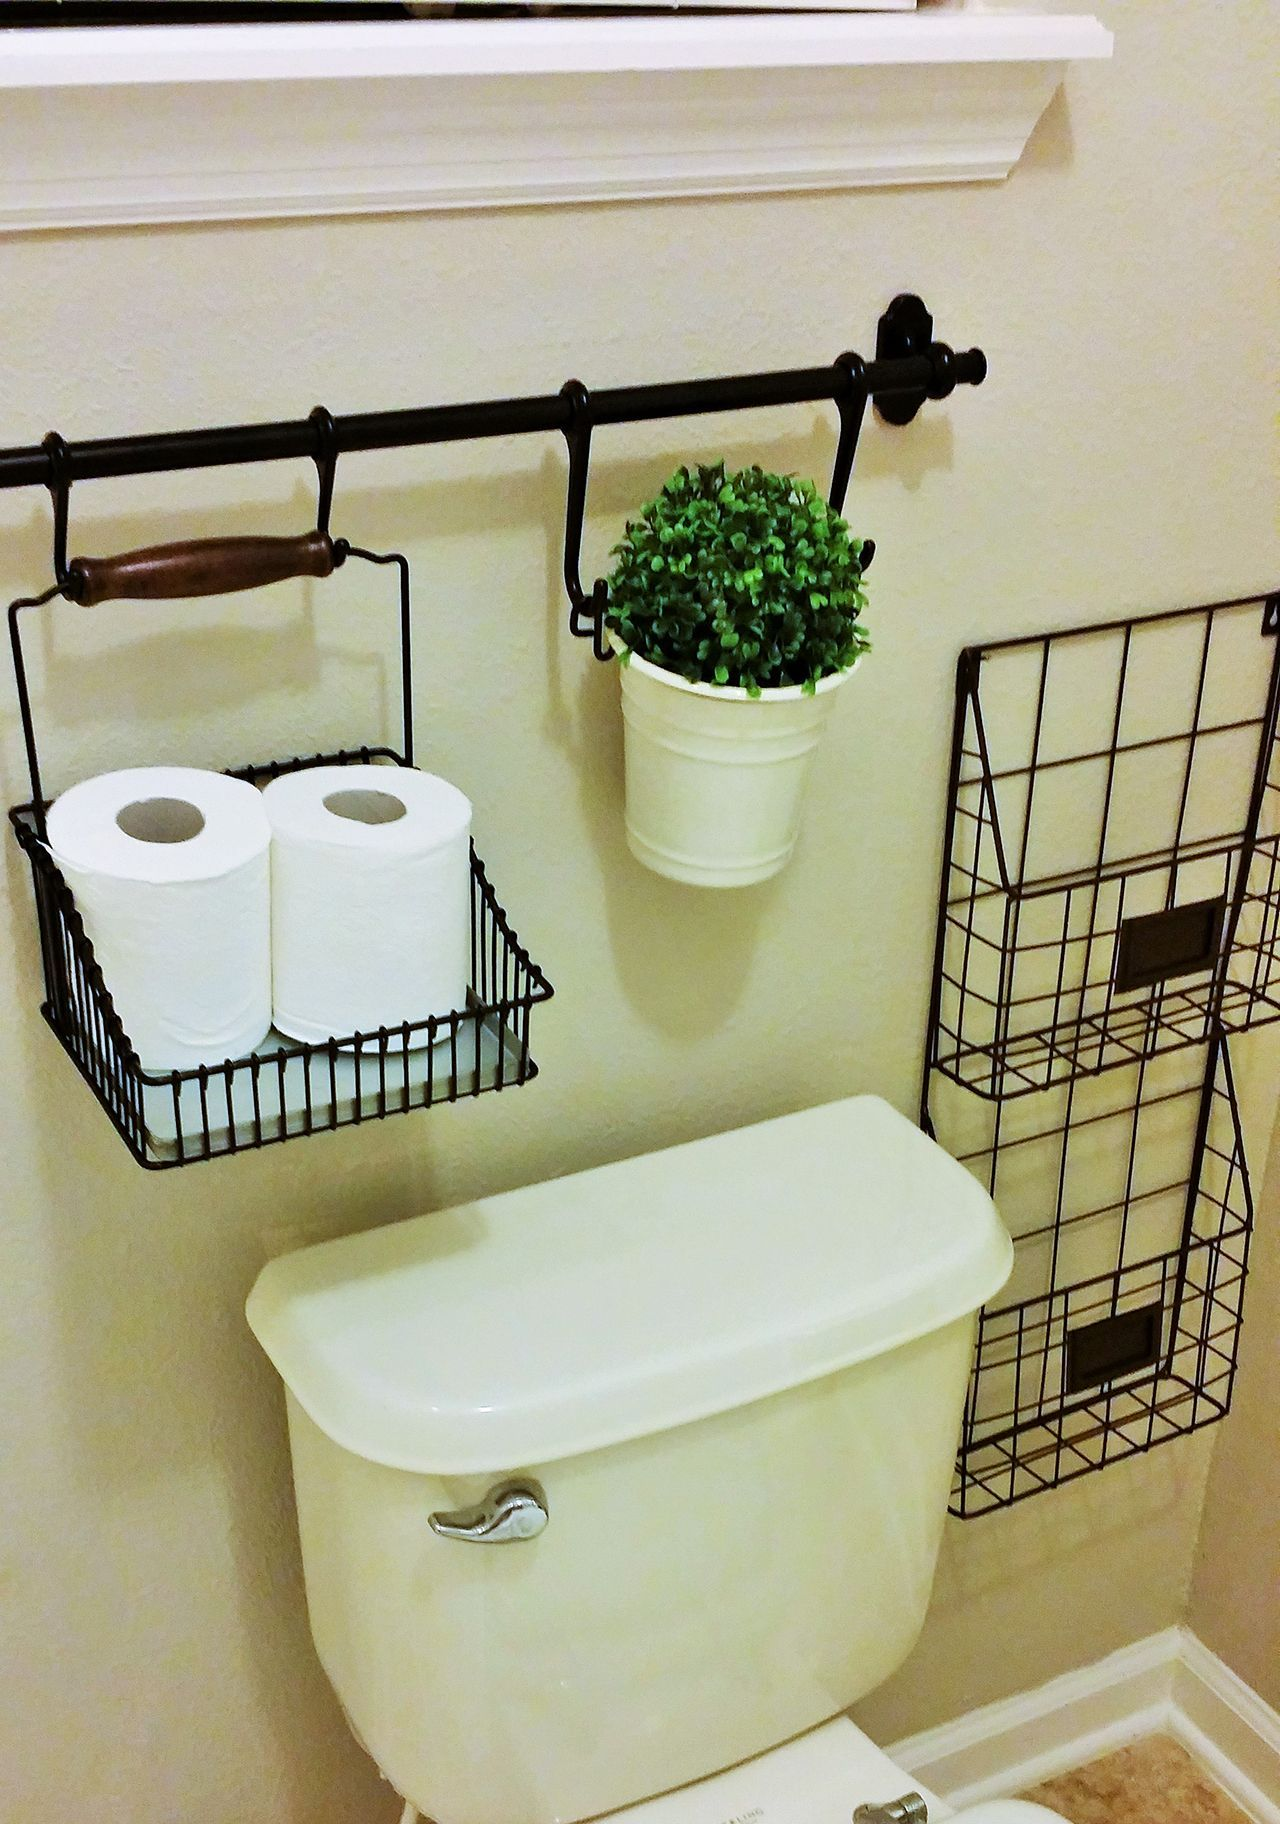 25 toilet paper holder ideas you can use to decorate your roll - home decors#decorate #decors #holder #home #ideas #paper #roll #toilet